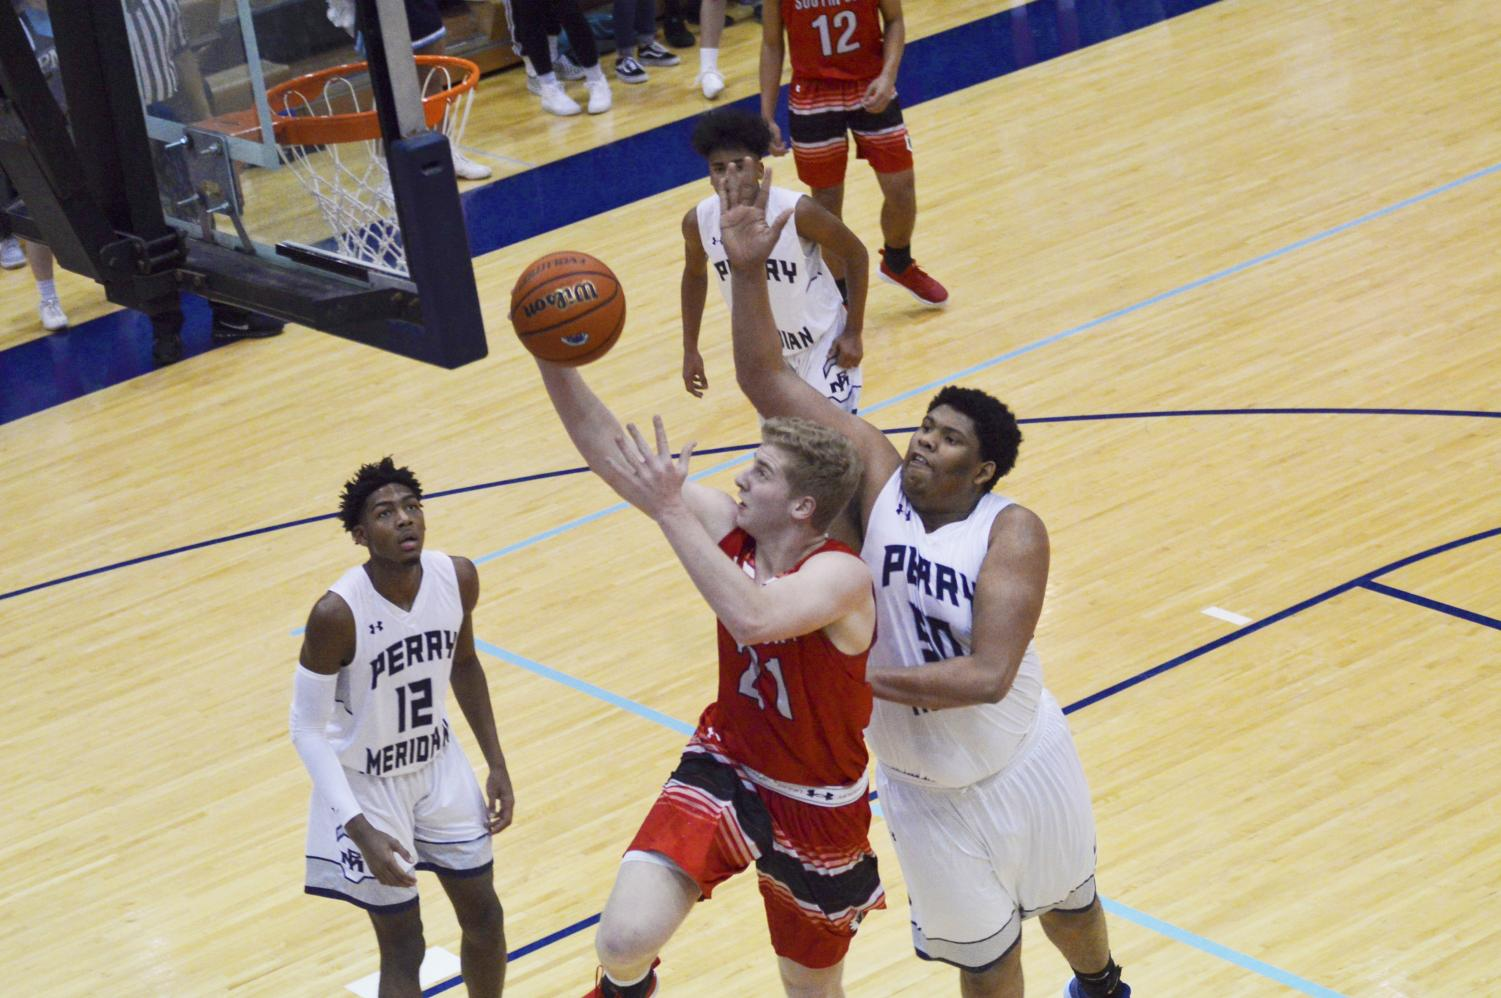 Junior Eddie Schott goes up for a layup during the Perry Meridian basketball game on Feb. 1 at PMHS. Schott led the Cards in scoring with 23 points in their 71-57 victory.